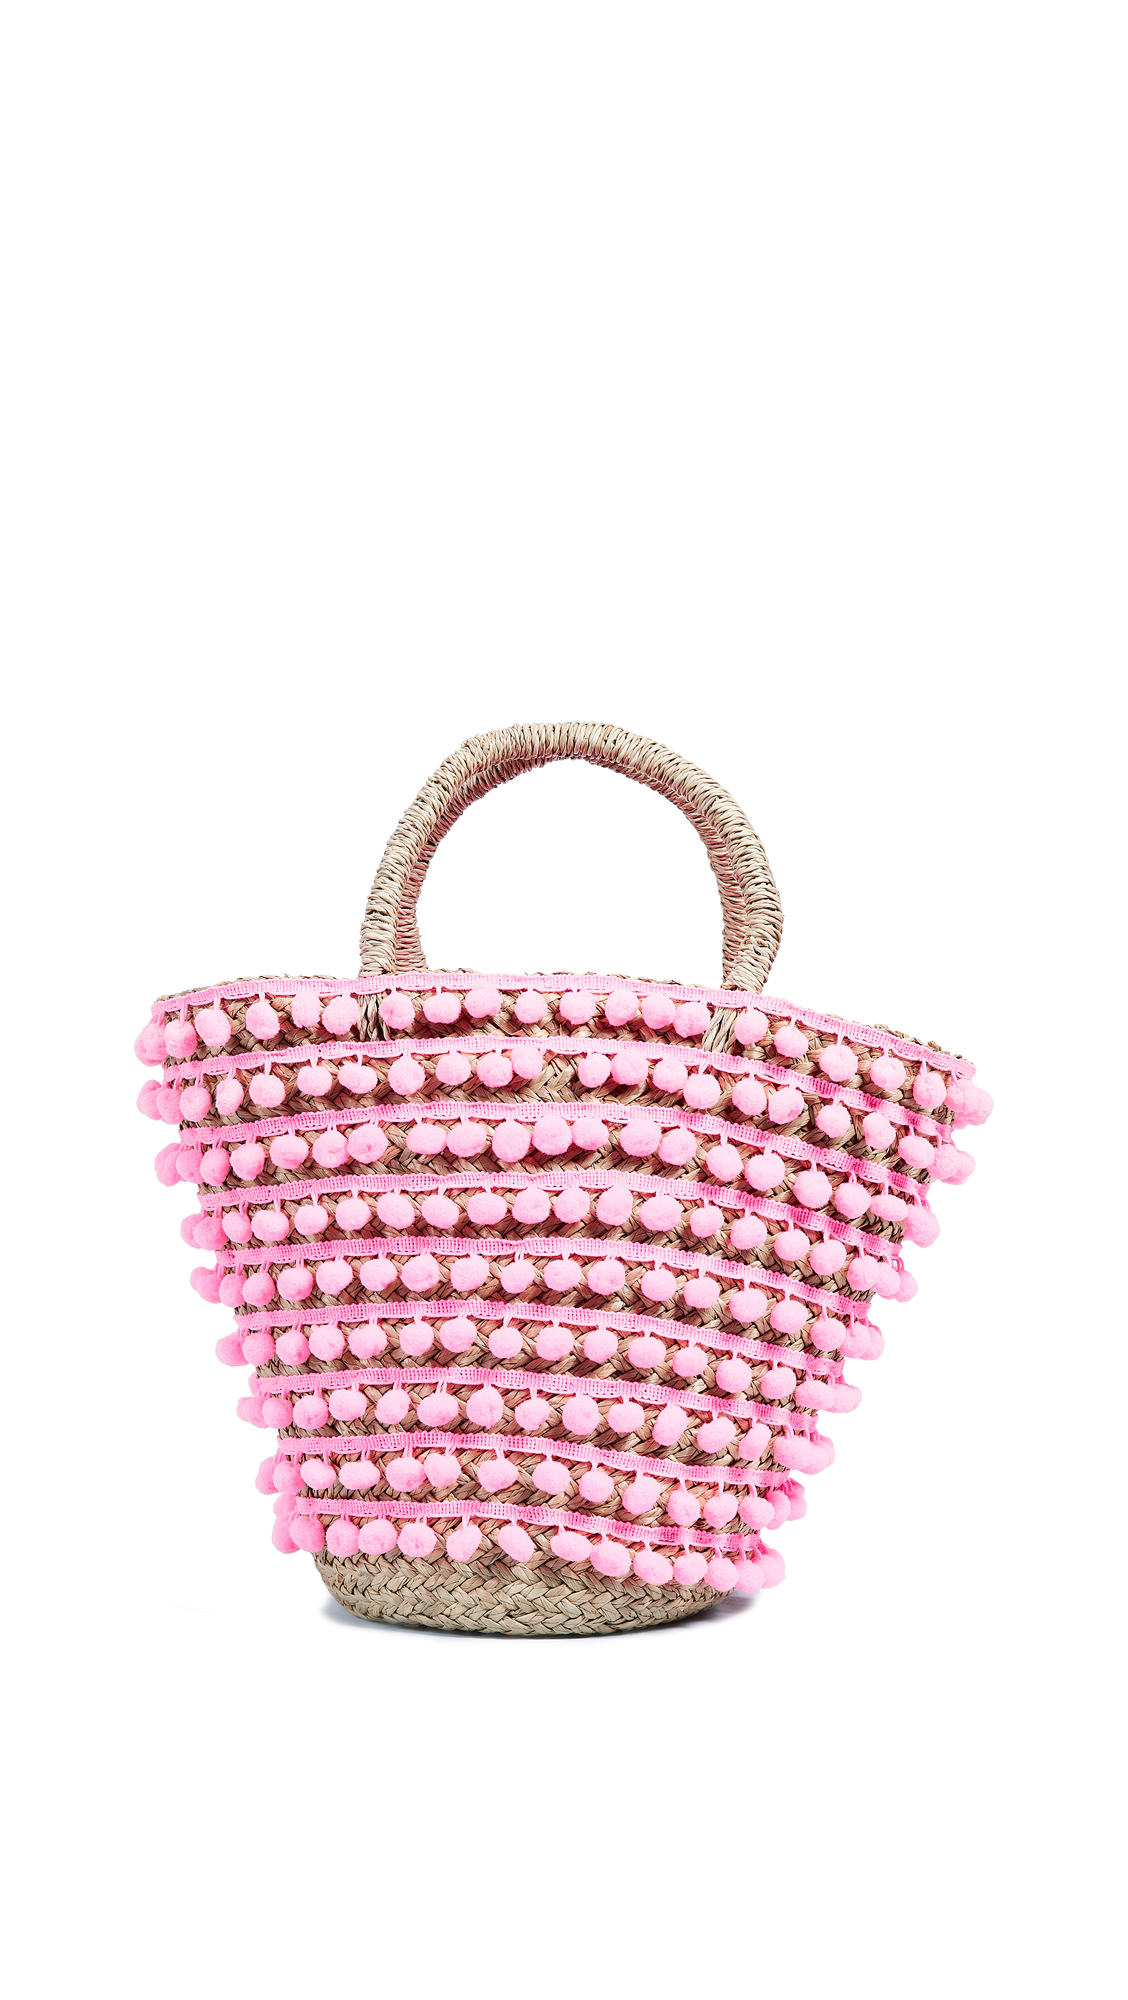 woven-bags-and-accessories-2018-pompom-tassels2